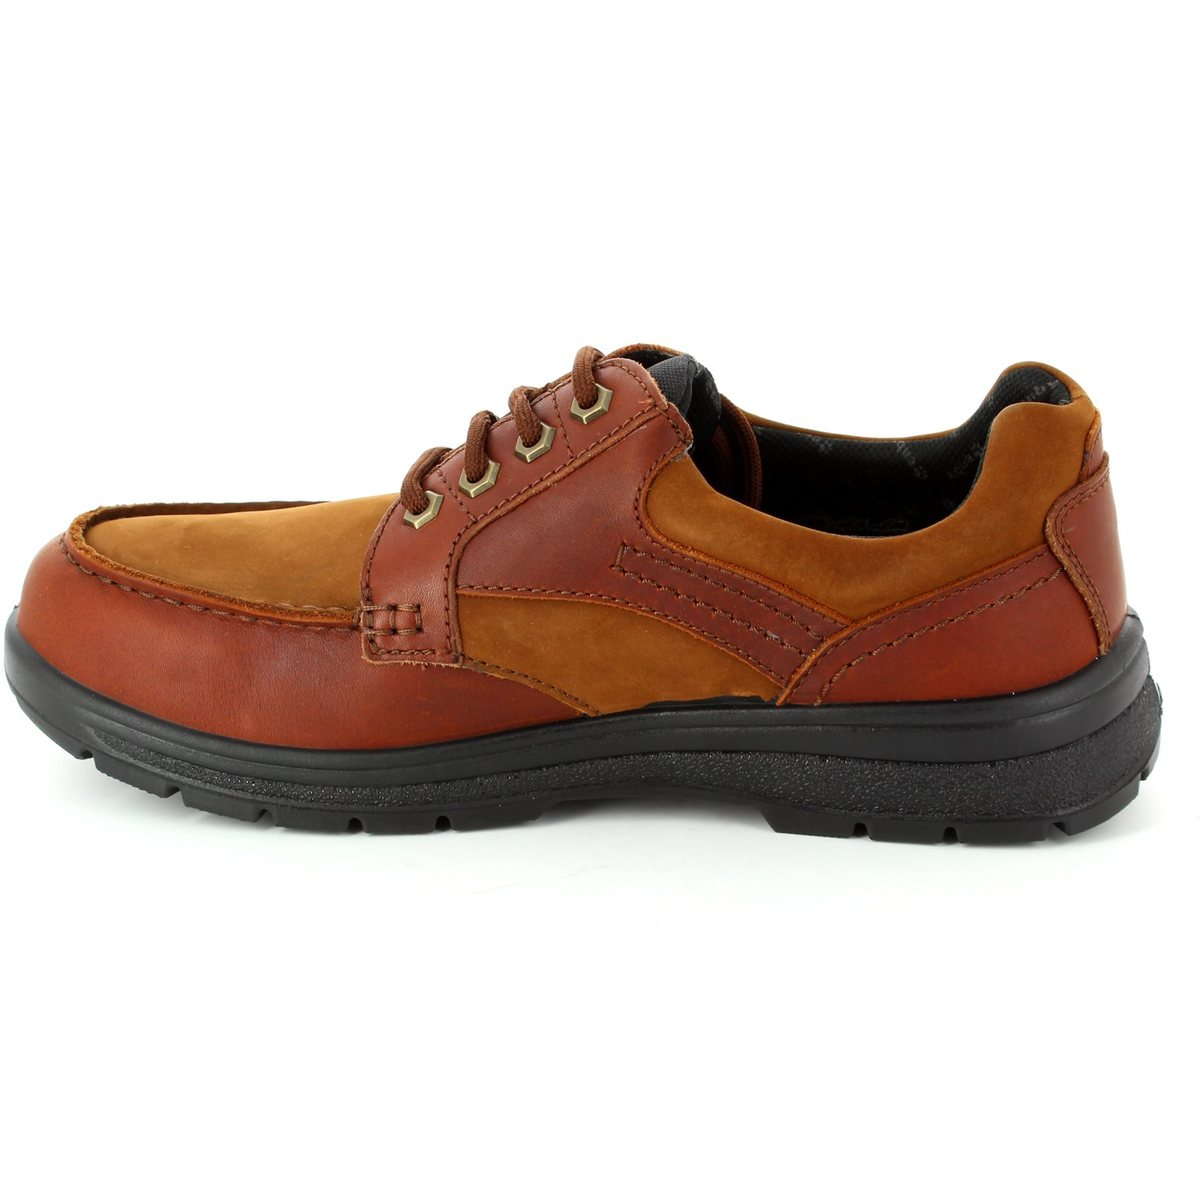 b8a1f5188775c Padders Casual Shoes - Tan multi - 0972/82 TRAIL WP G-H FIT